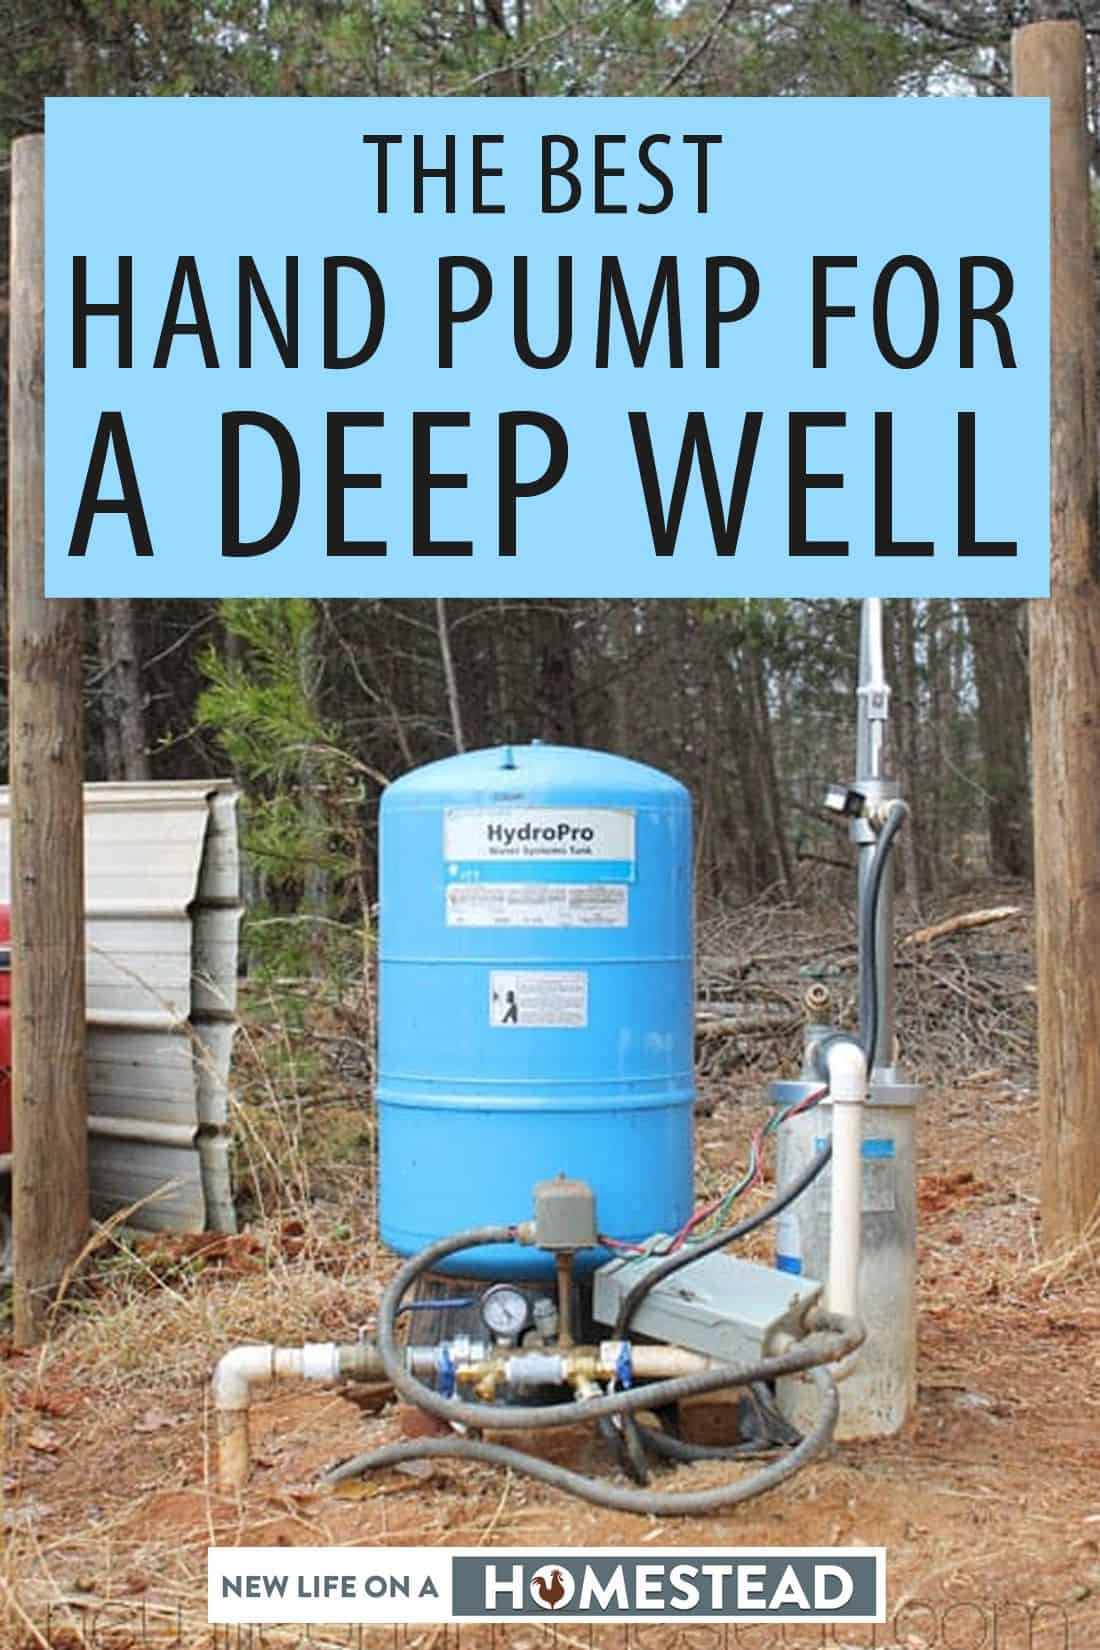 There are two good options for a deep well hand pump: Simple Pump and Bison. Find out which one I chose and why.